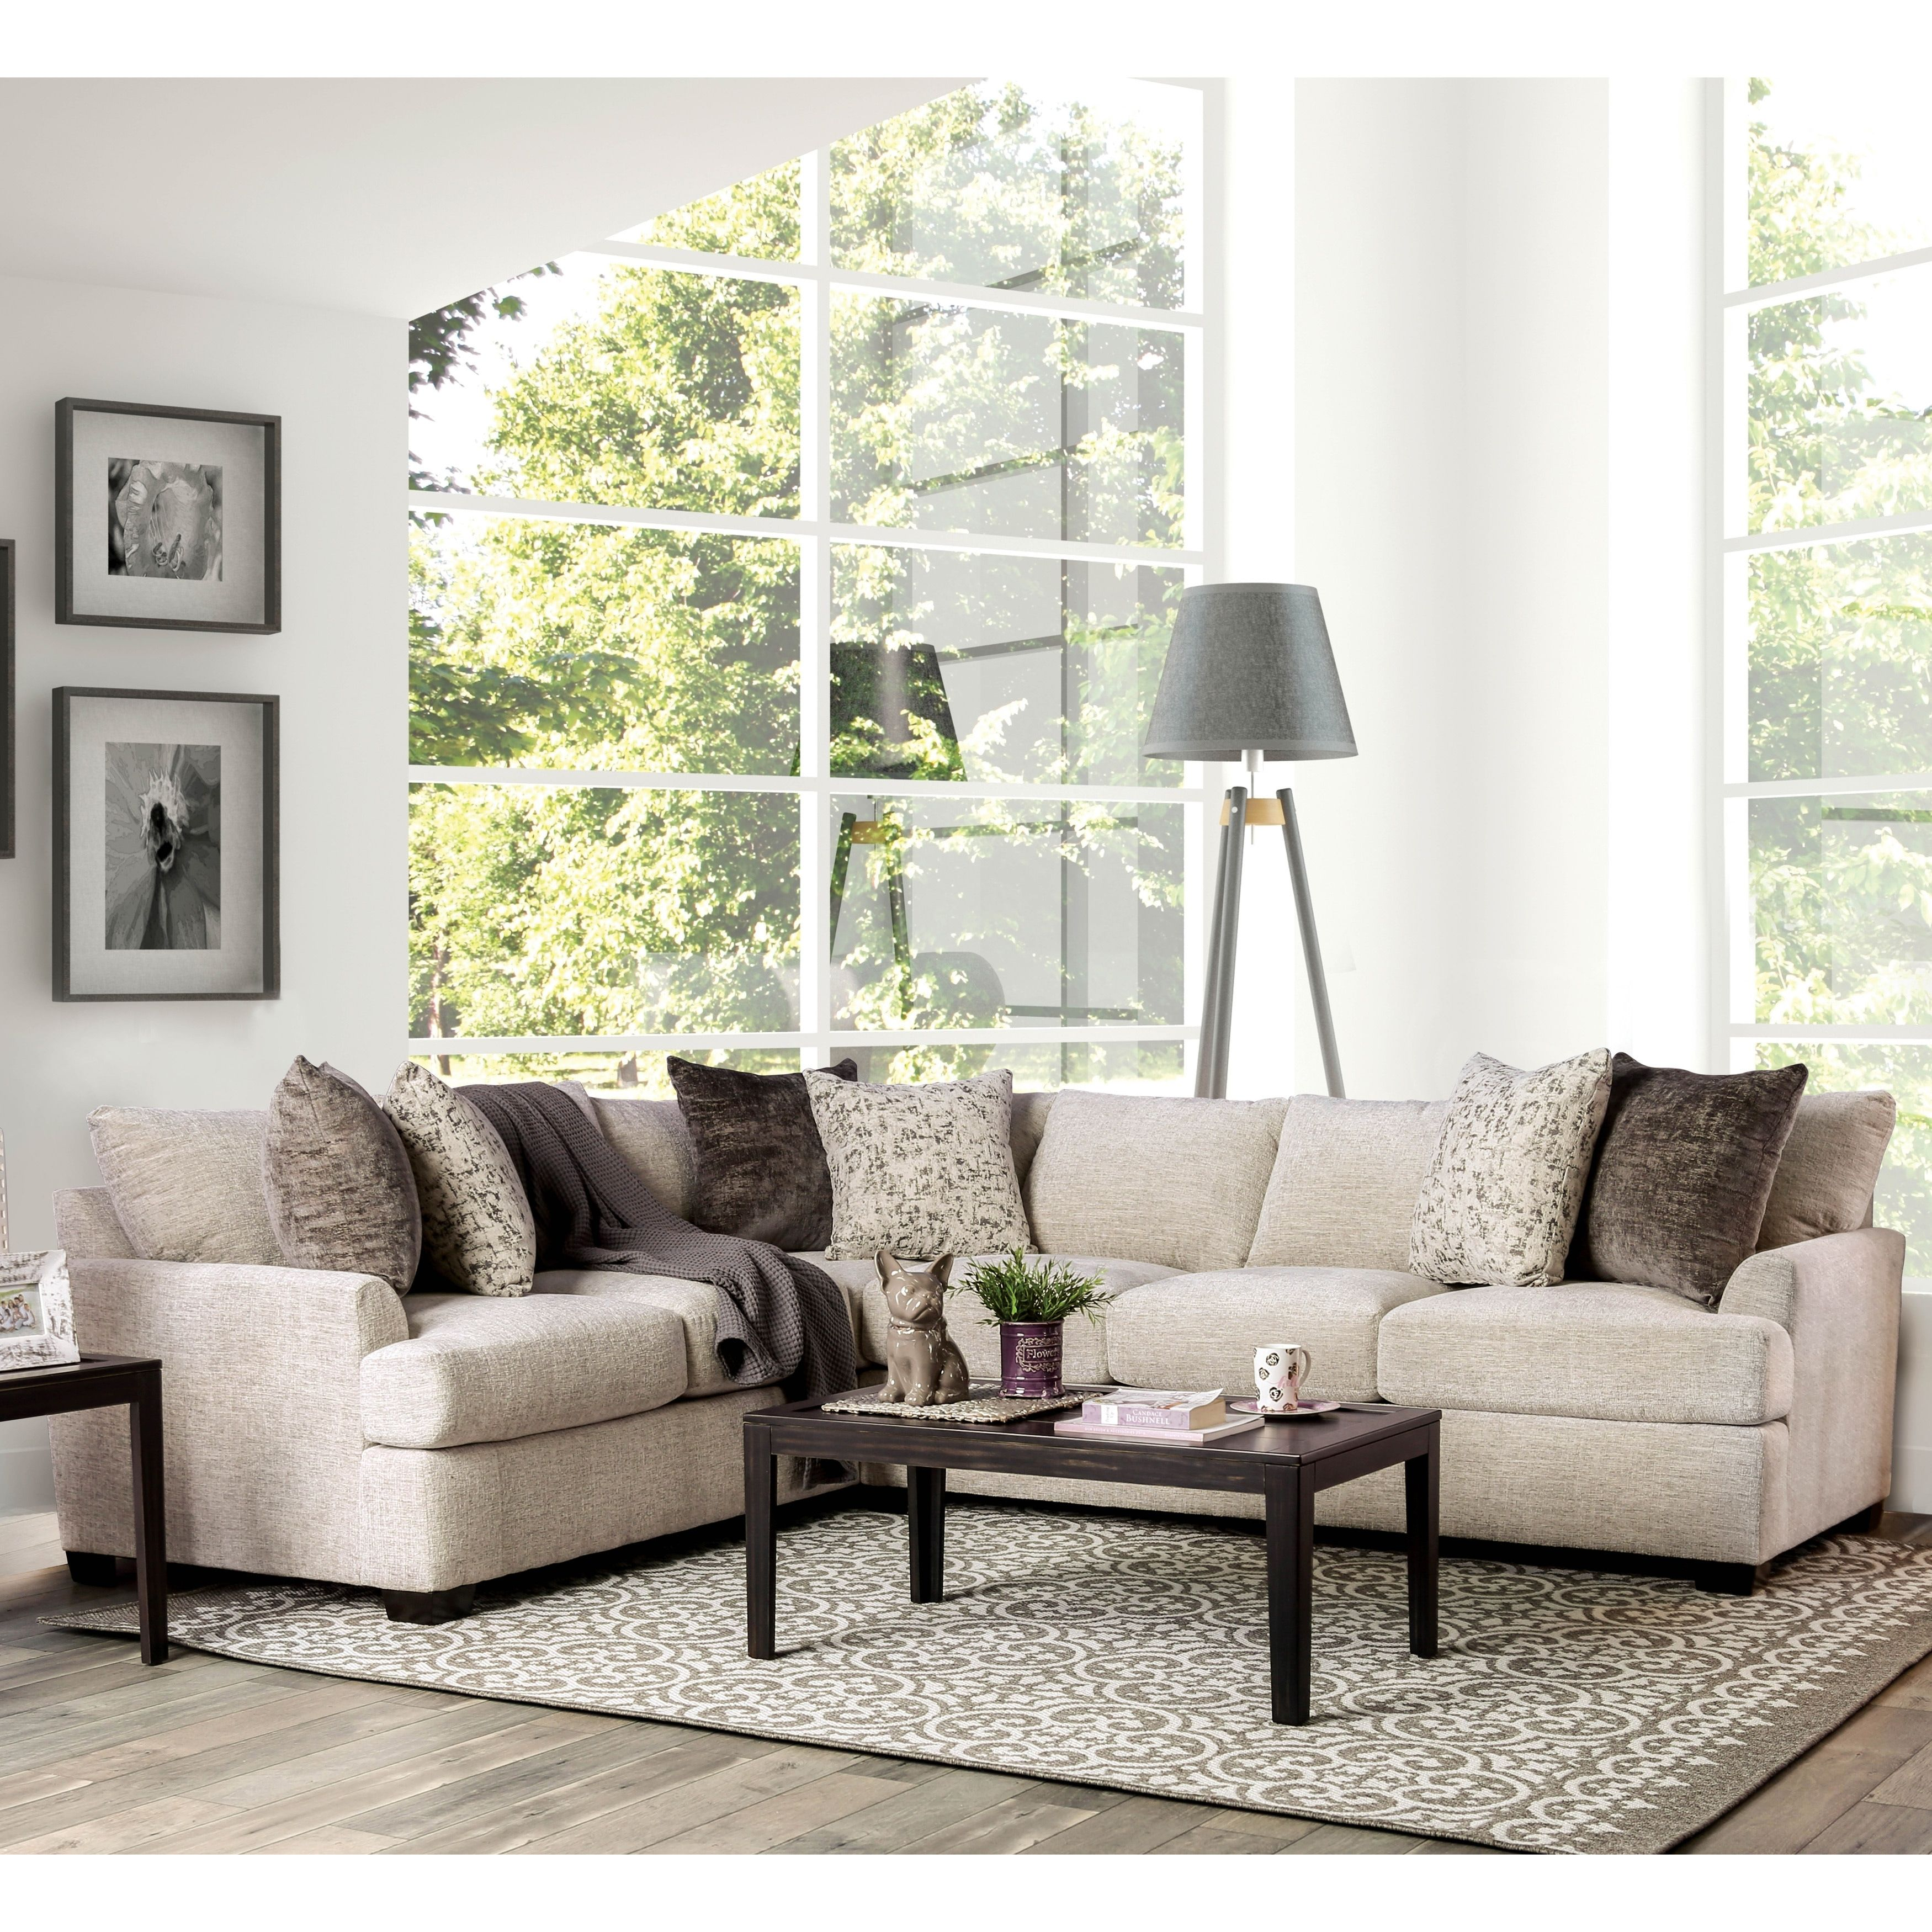 Furniture Of America Sis Contemporary Ivory 3 Piece Sectional Sofa Sectional Sofa Furniture 3 Piece Sectional Sofa